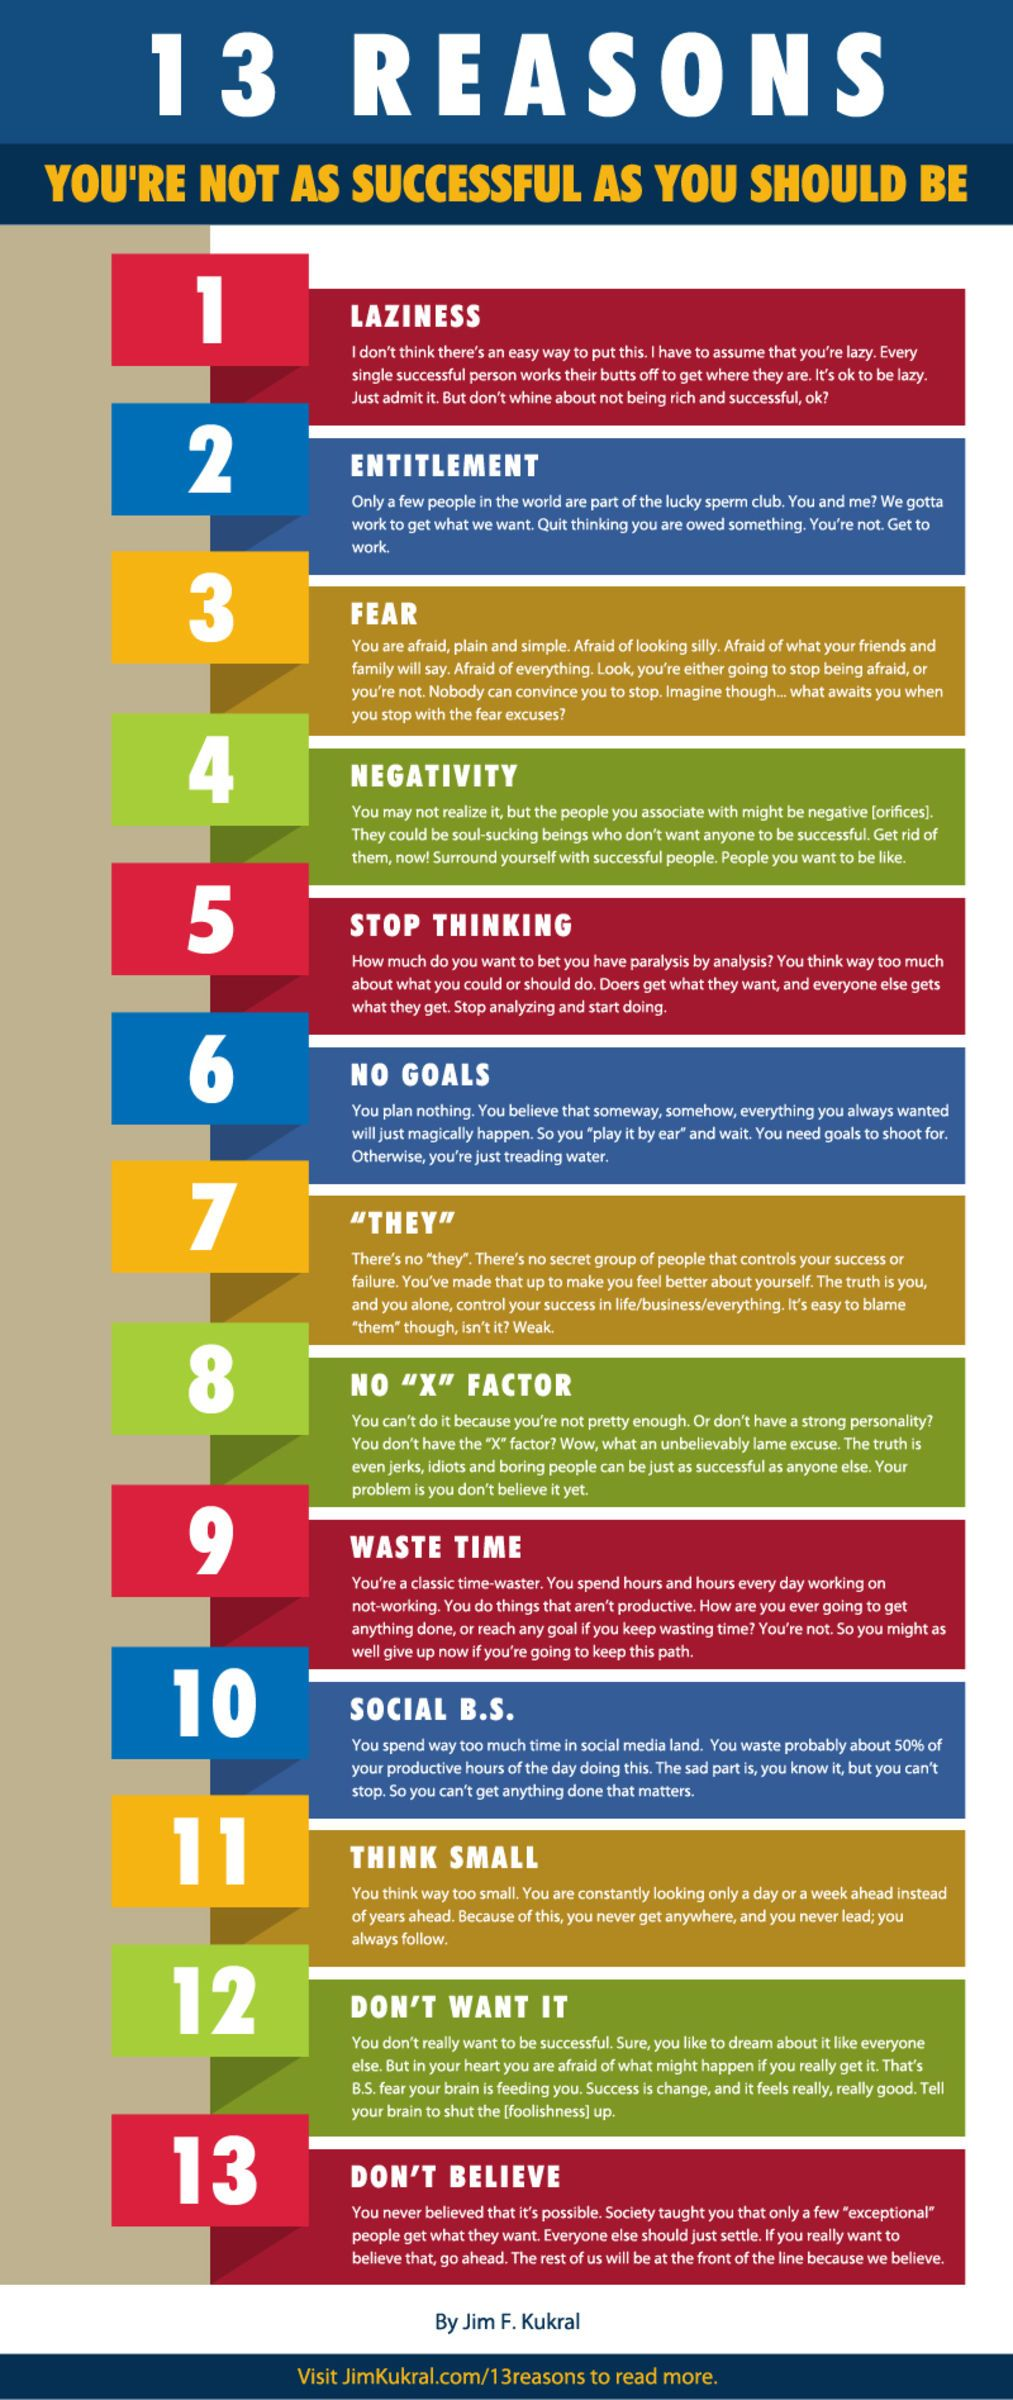 Read 13 Reasons Why You're Not Successful | Infographic